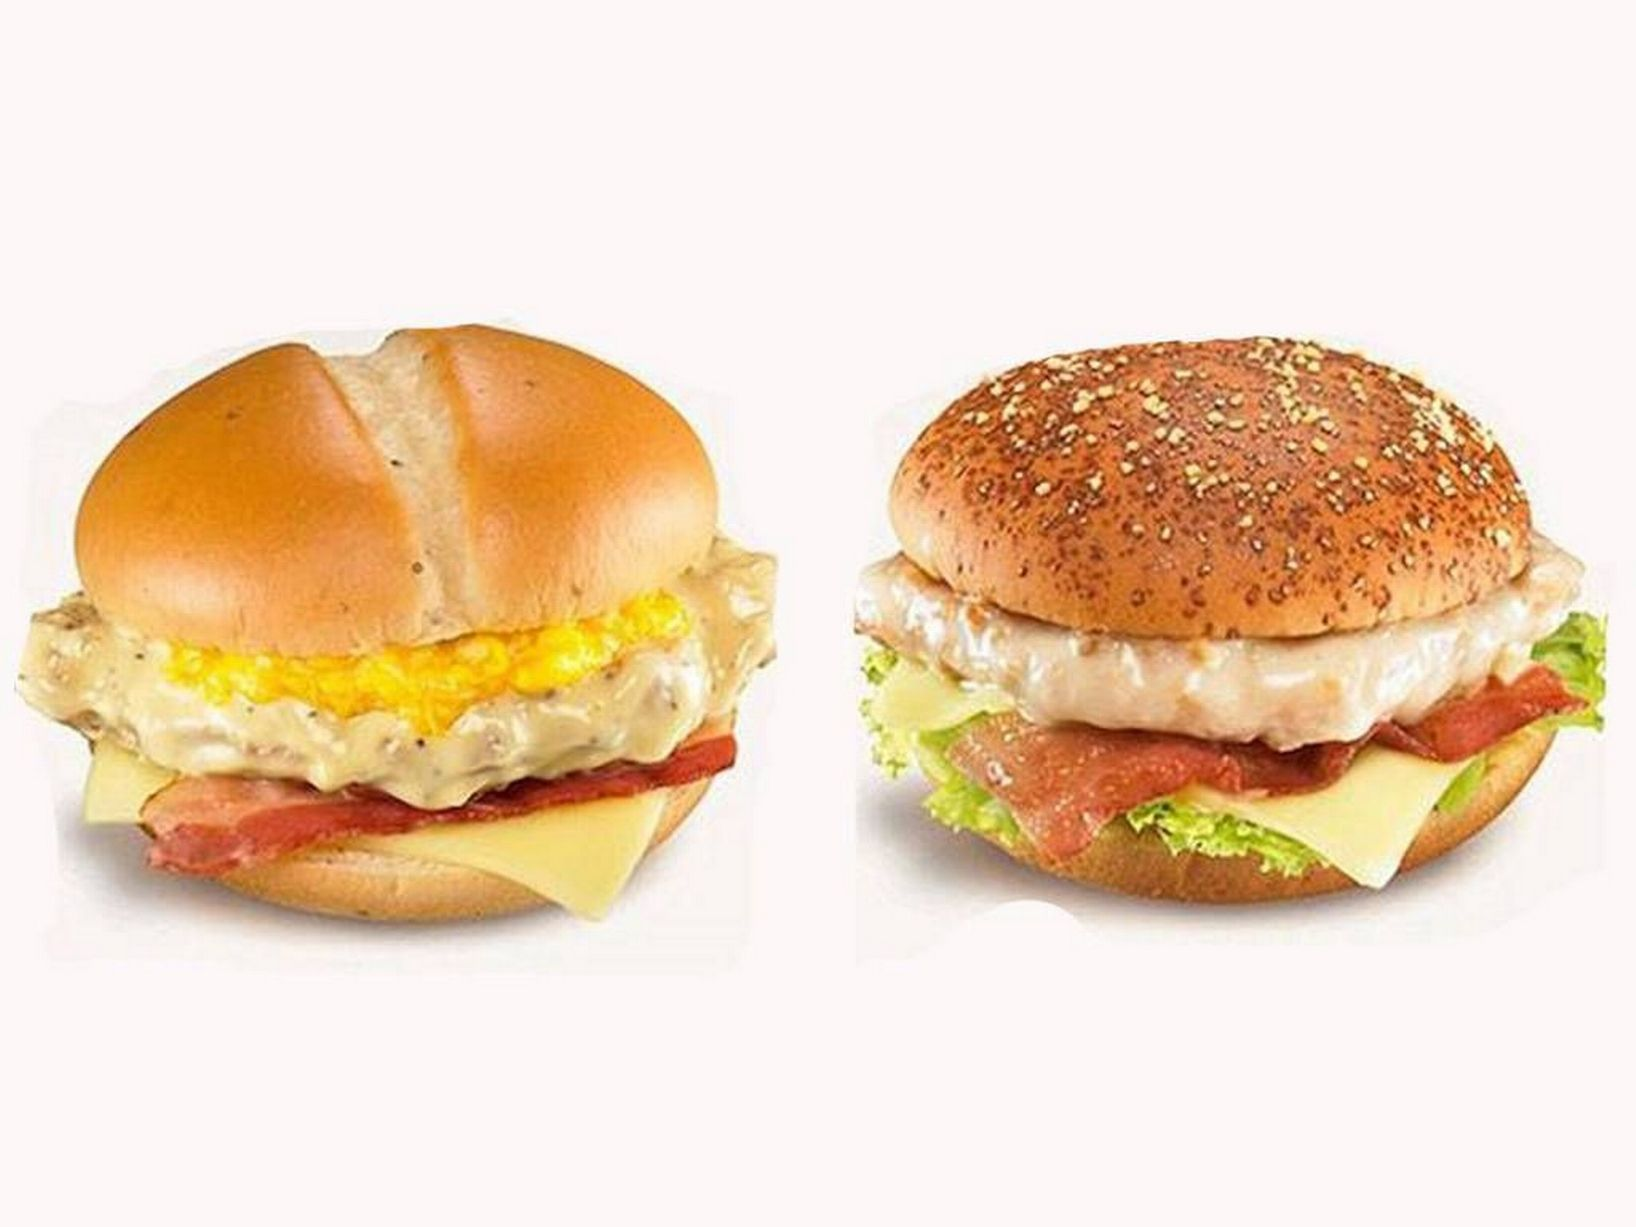 Cheese-Fondue-left-and-Carbonara-burger-right-served-in-Japan